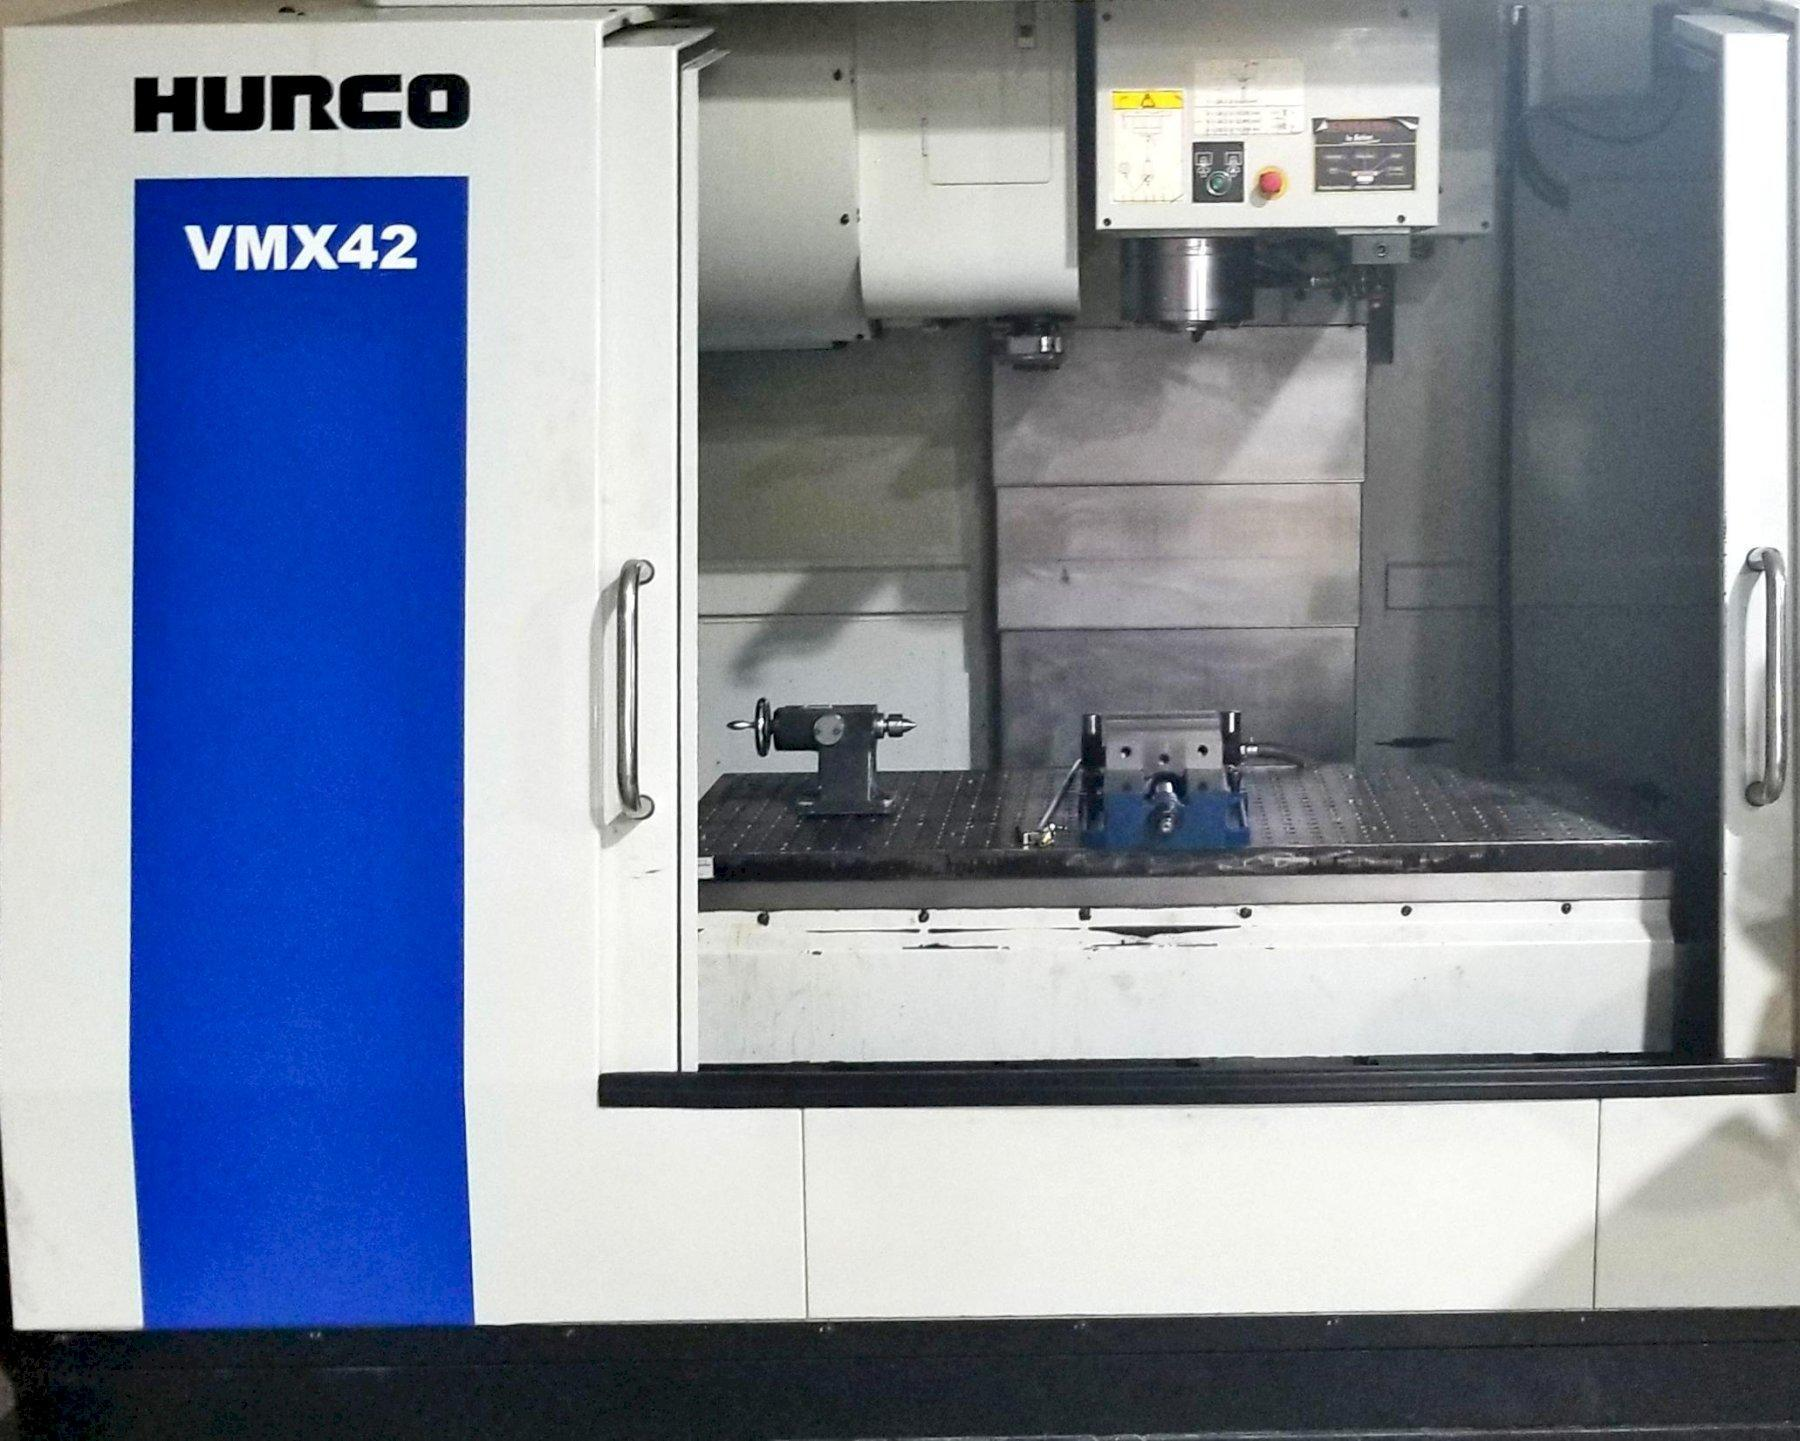 HURCO VMX42 VERTICAL MACHINING CENTER